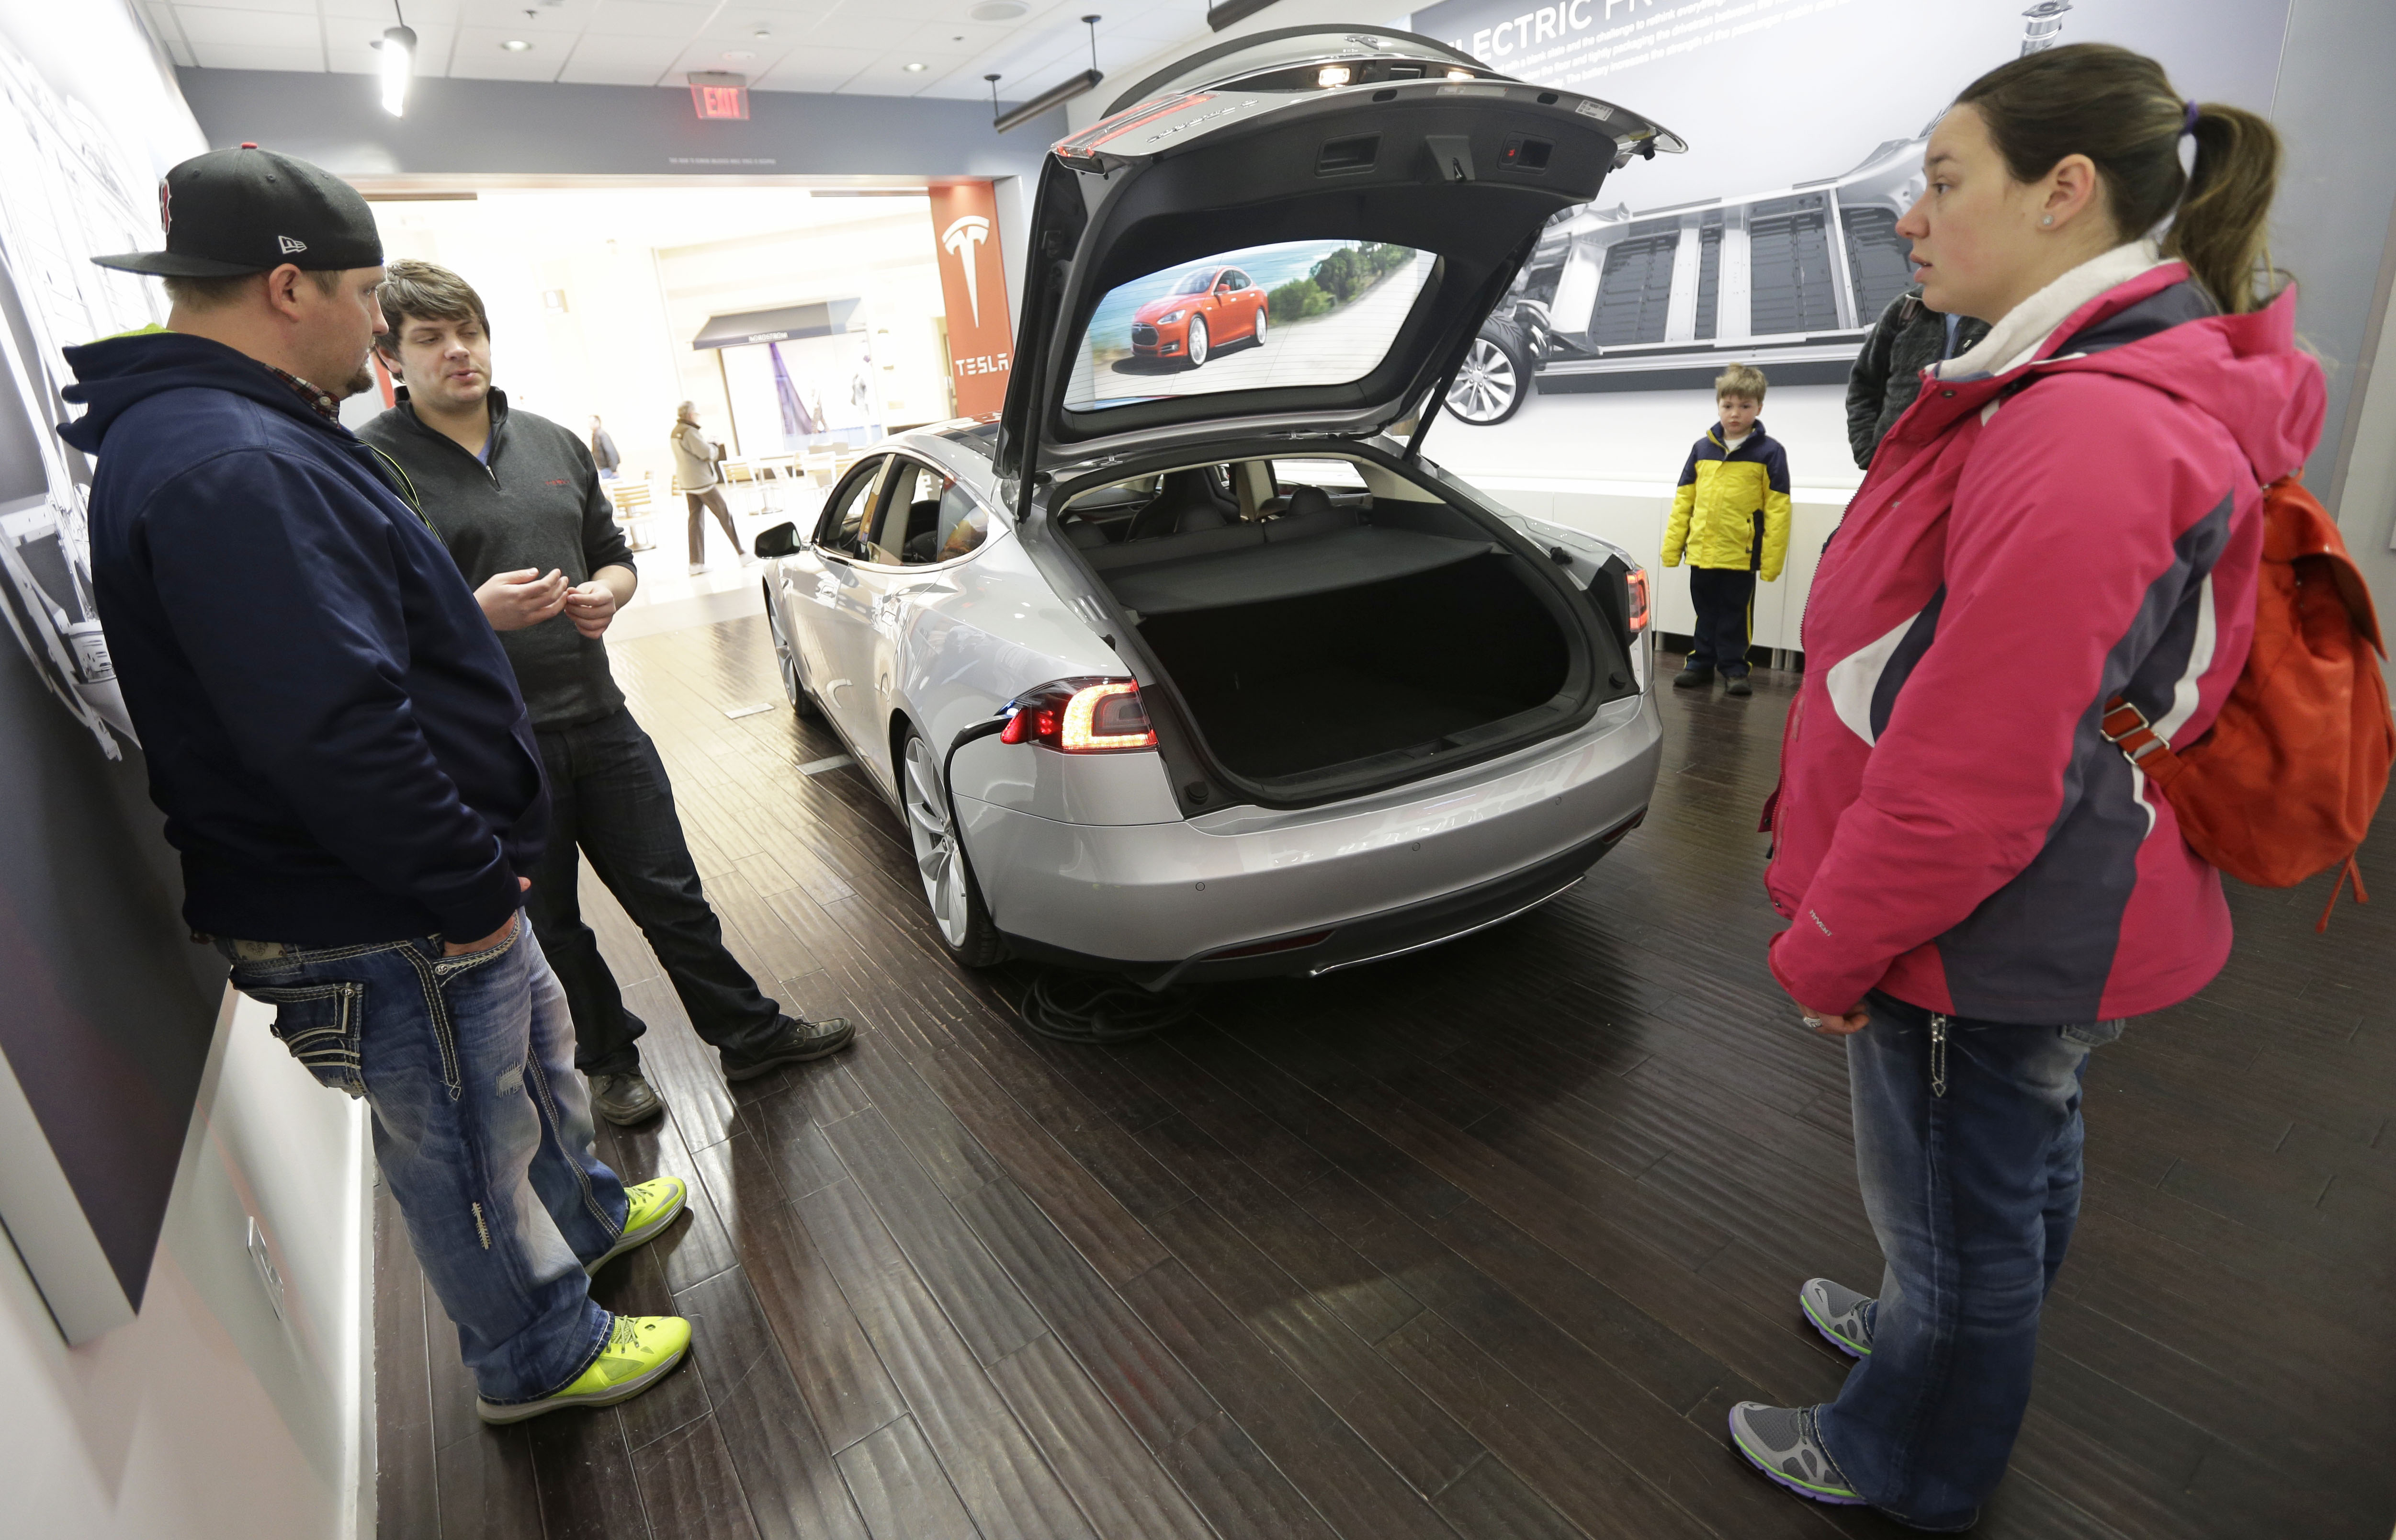 Towne Auto Sales >> Ohio auto dealers fight Tesla over sales model - The Blade